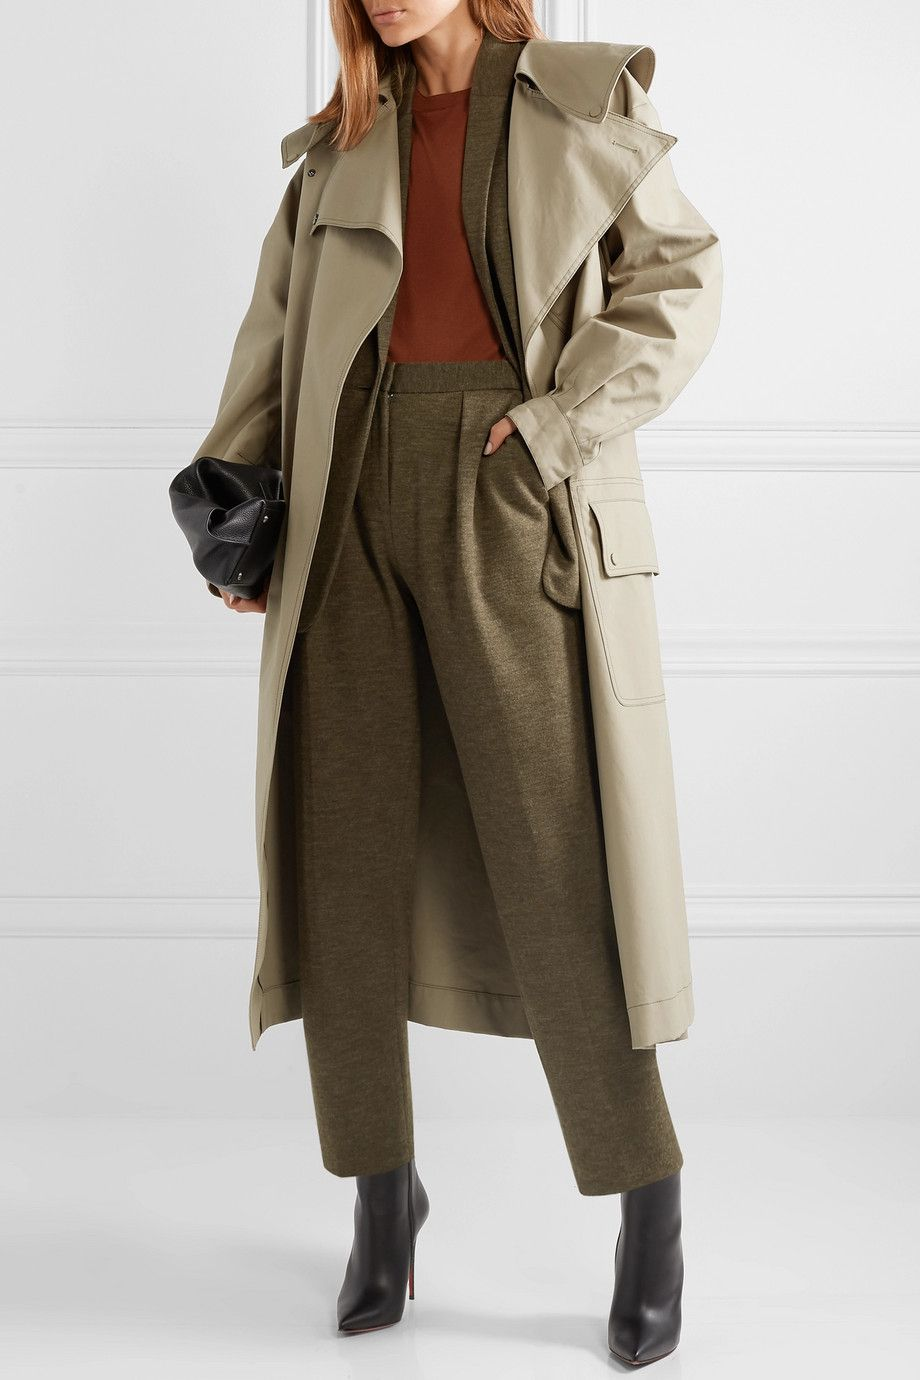 shop-by-malene-birger-woven-suit